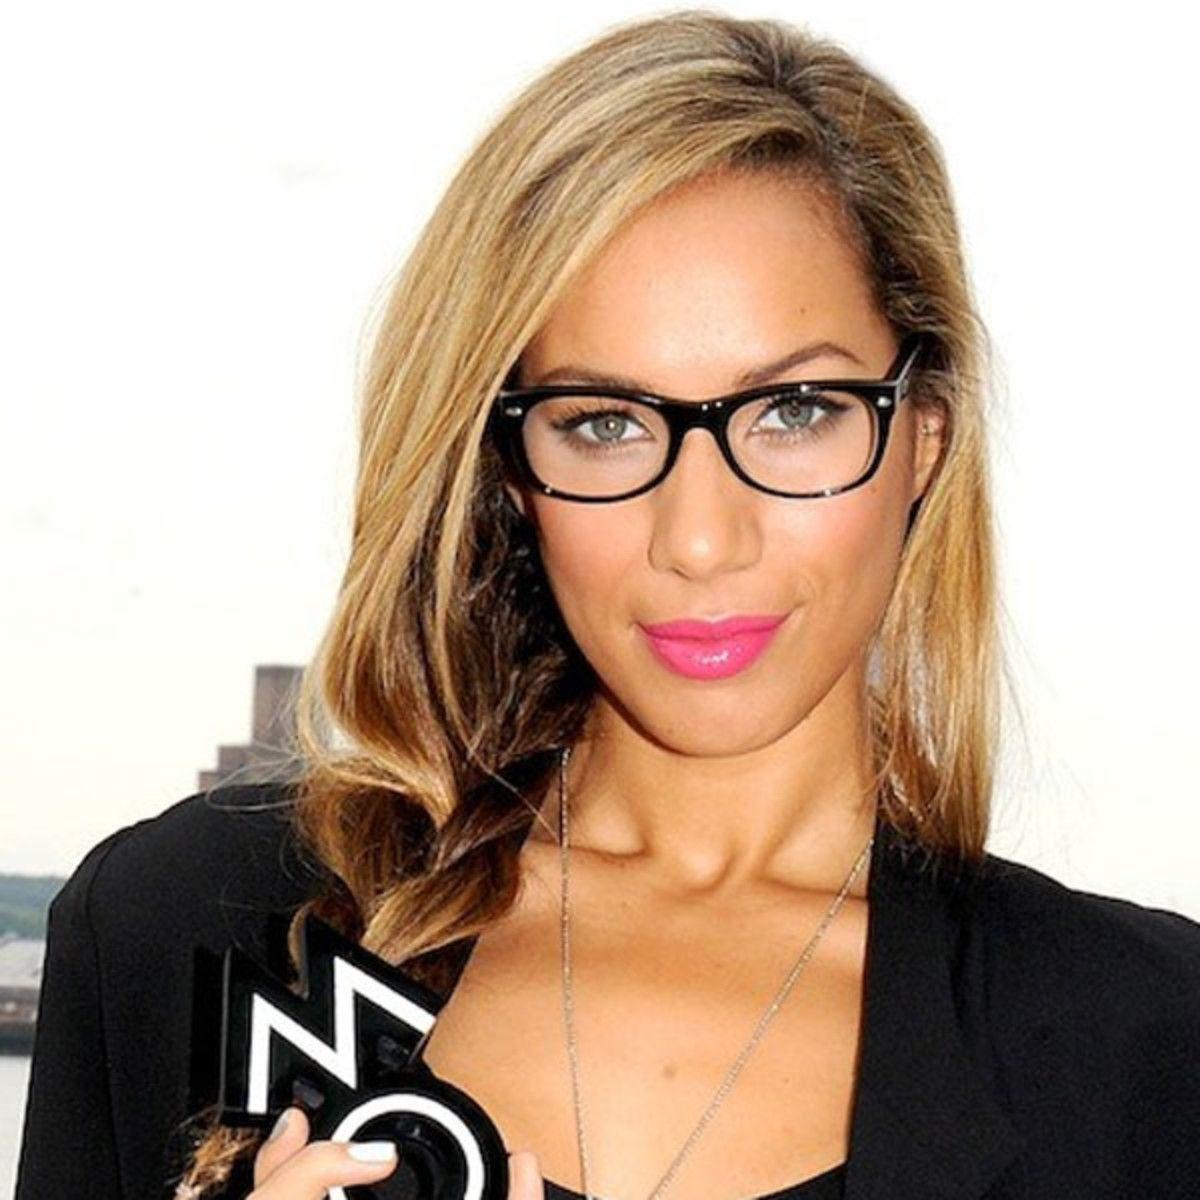 Q: What Makeup Should I Wear With My Glasses?